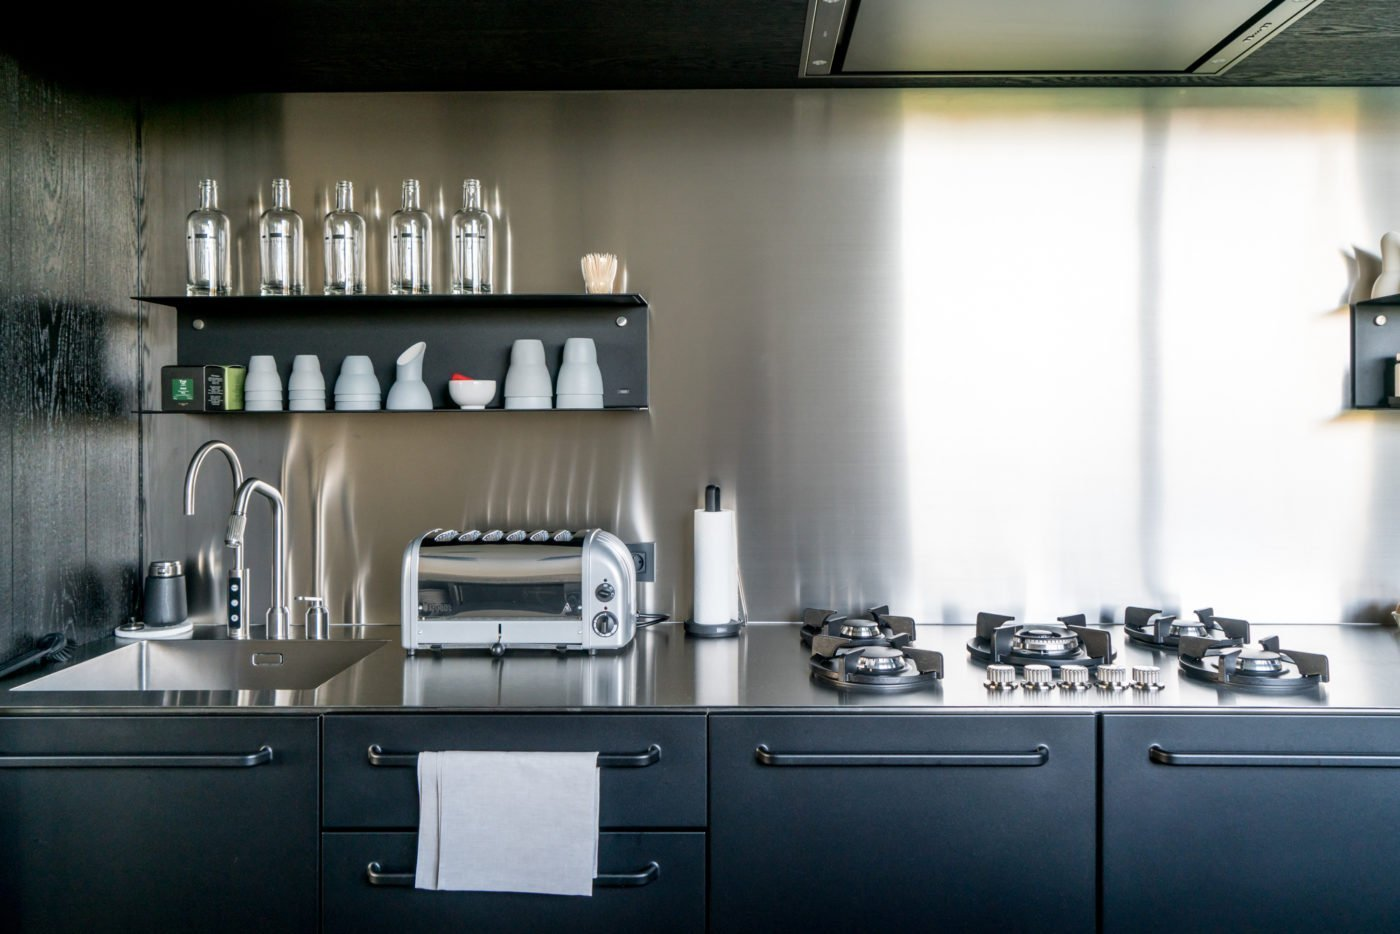 The Bunkers has the first Vipp kitchen in Belgium